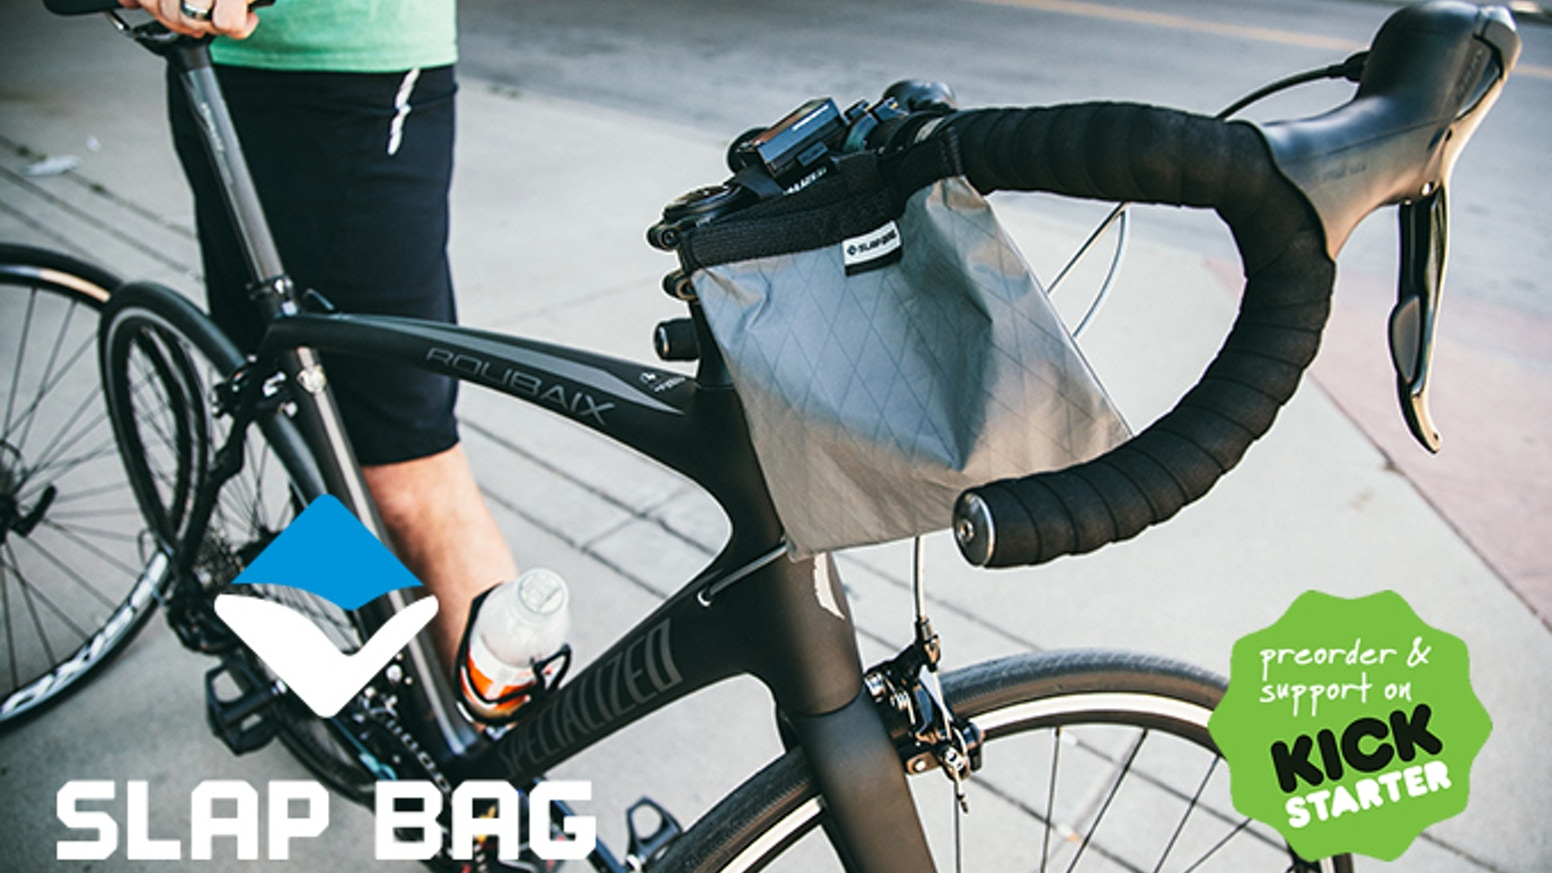 A bike handlebar mounted pouch that opens and closes with just one hand. The glove compartment your bike always wanted!